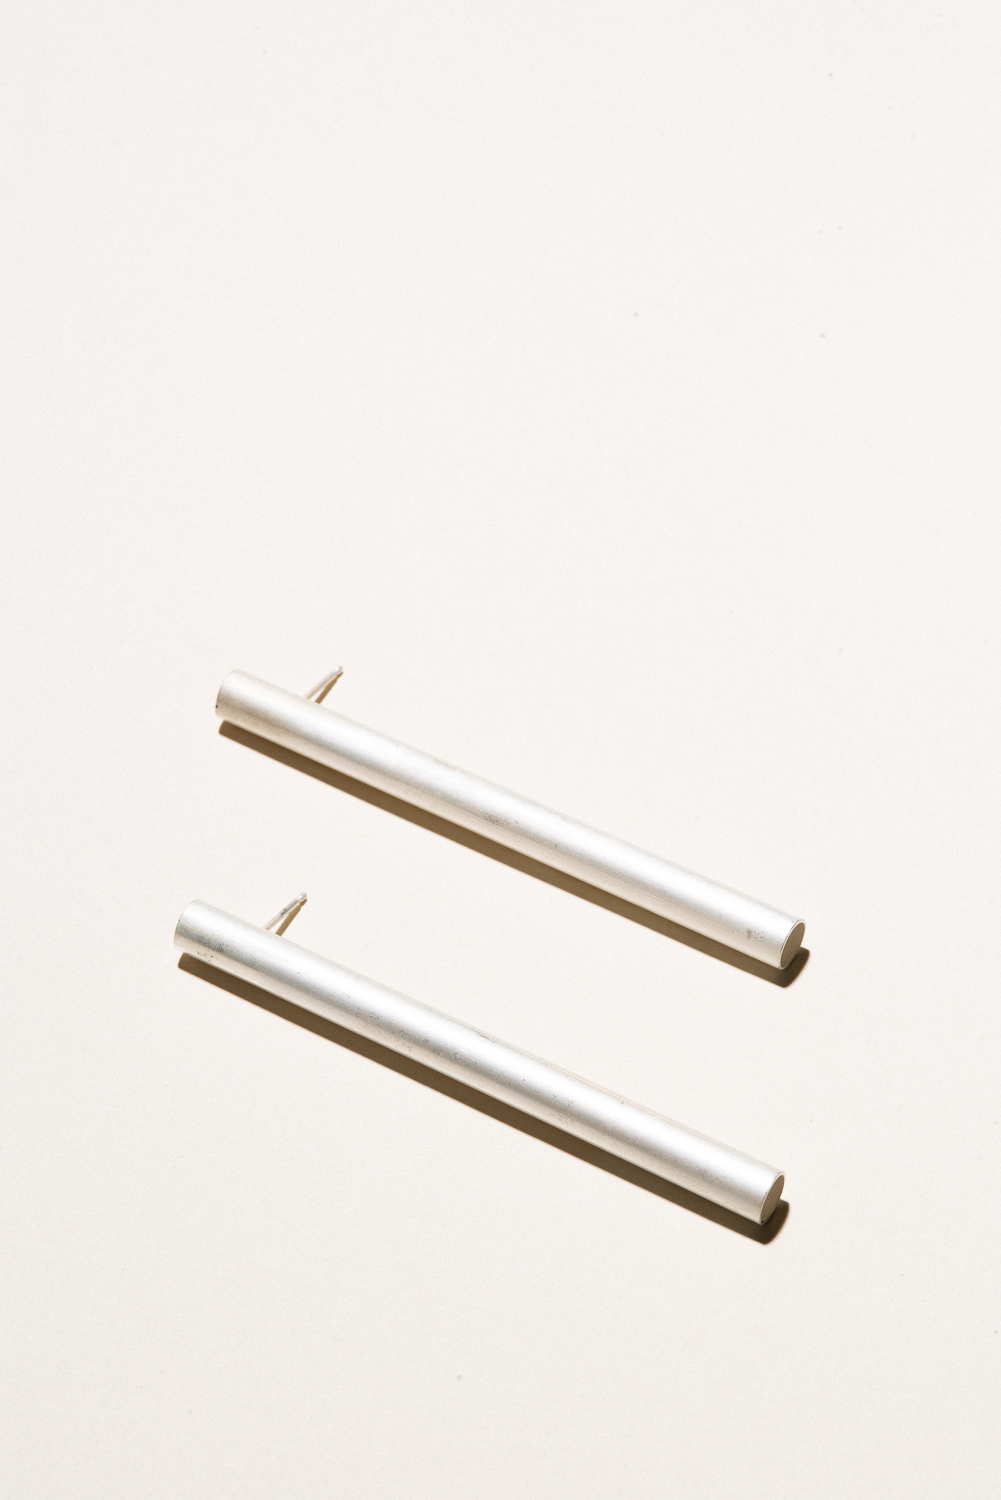 Tube Earrings - 6mm x 3inSterling Silver, Raw FinishHand Smithed$175